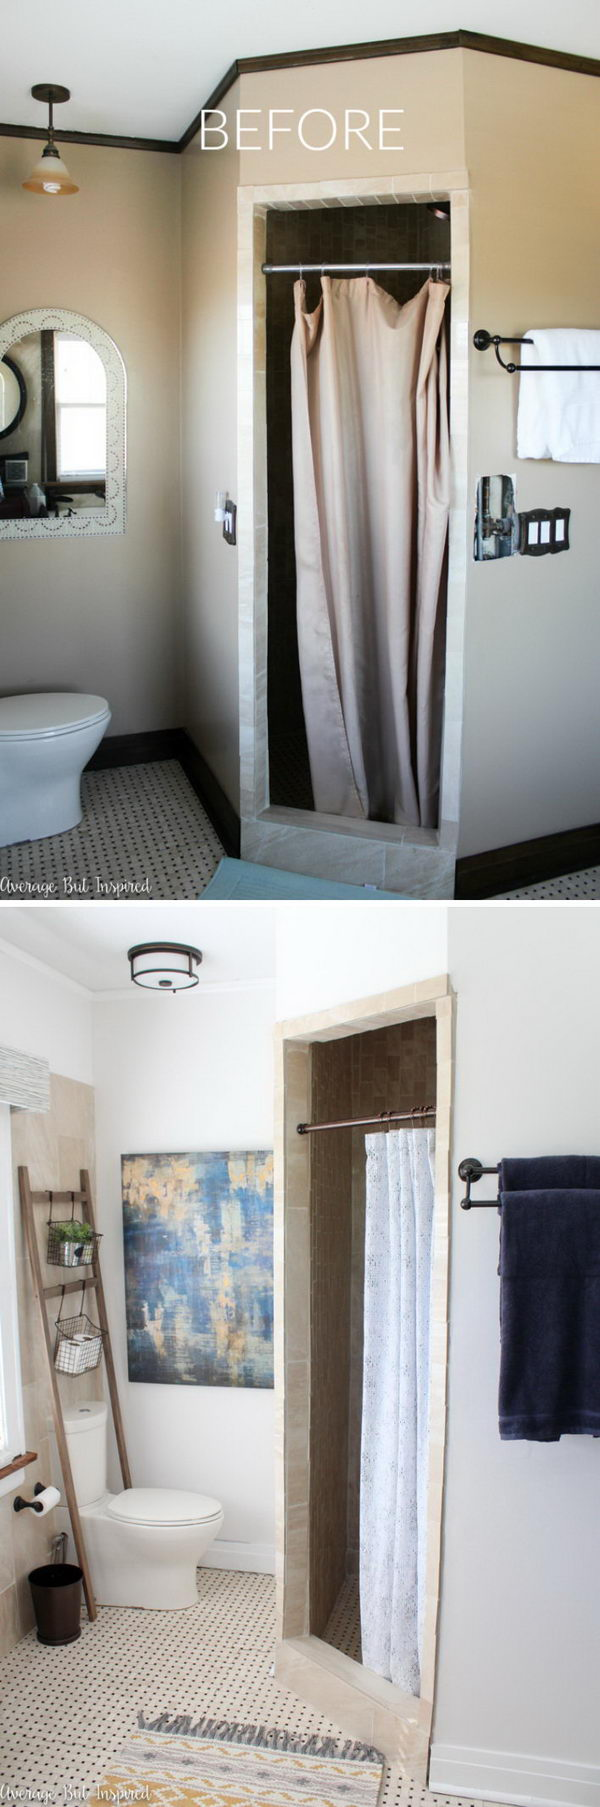 Light & Bright Master Bathroom Makeover Reveal.